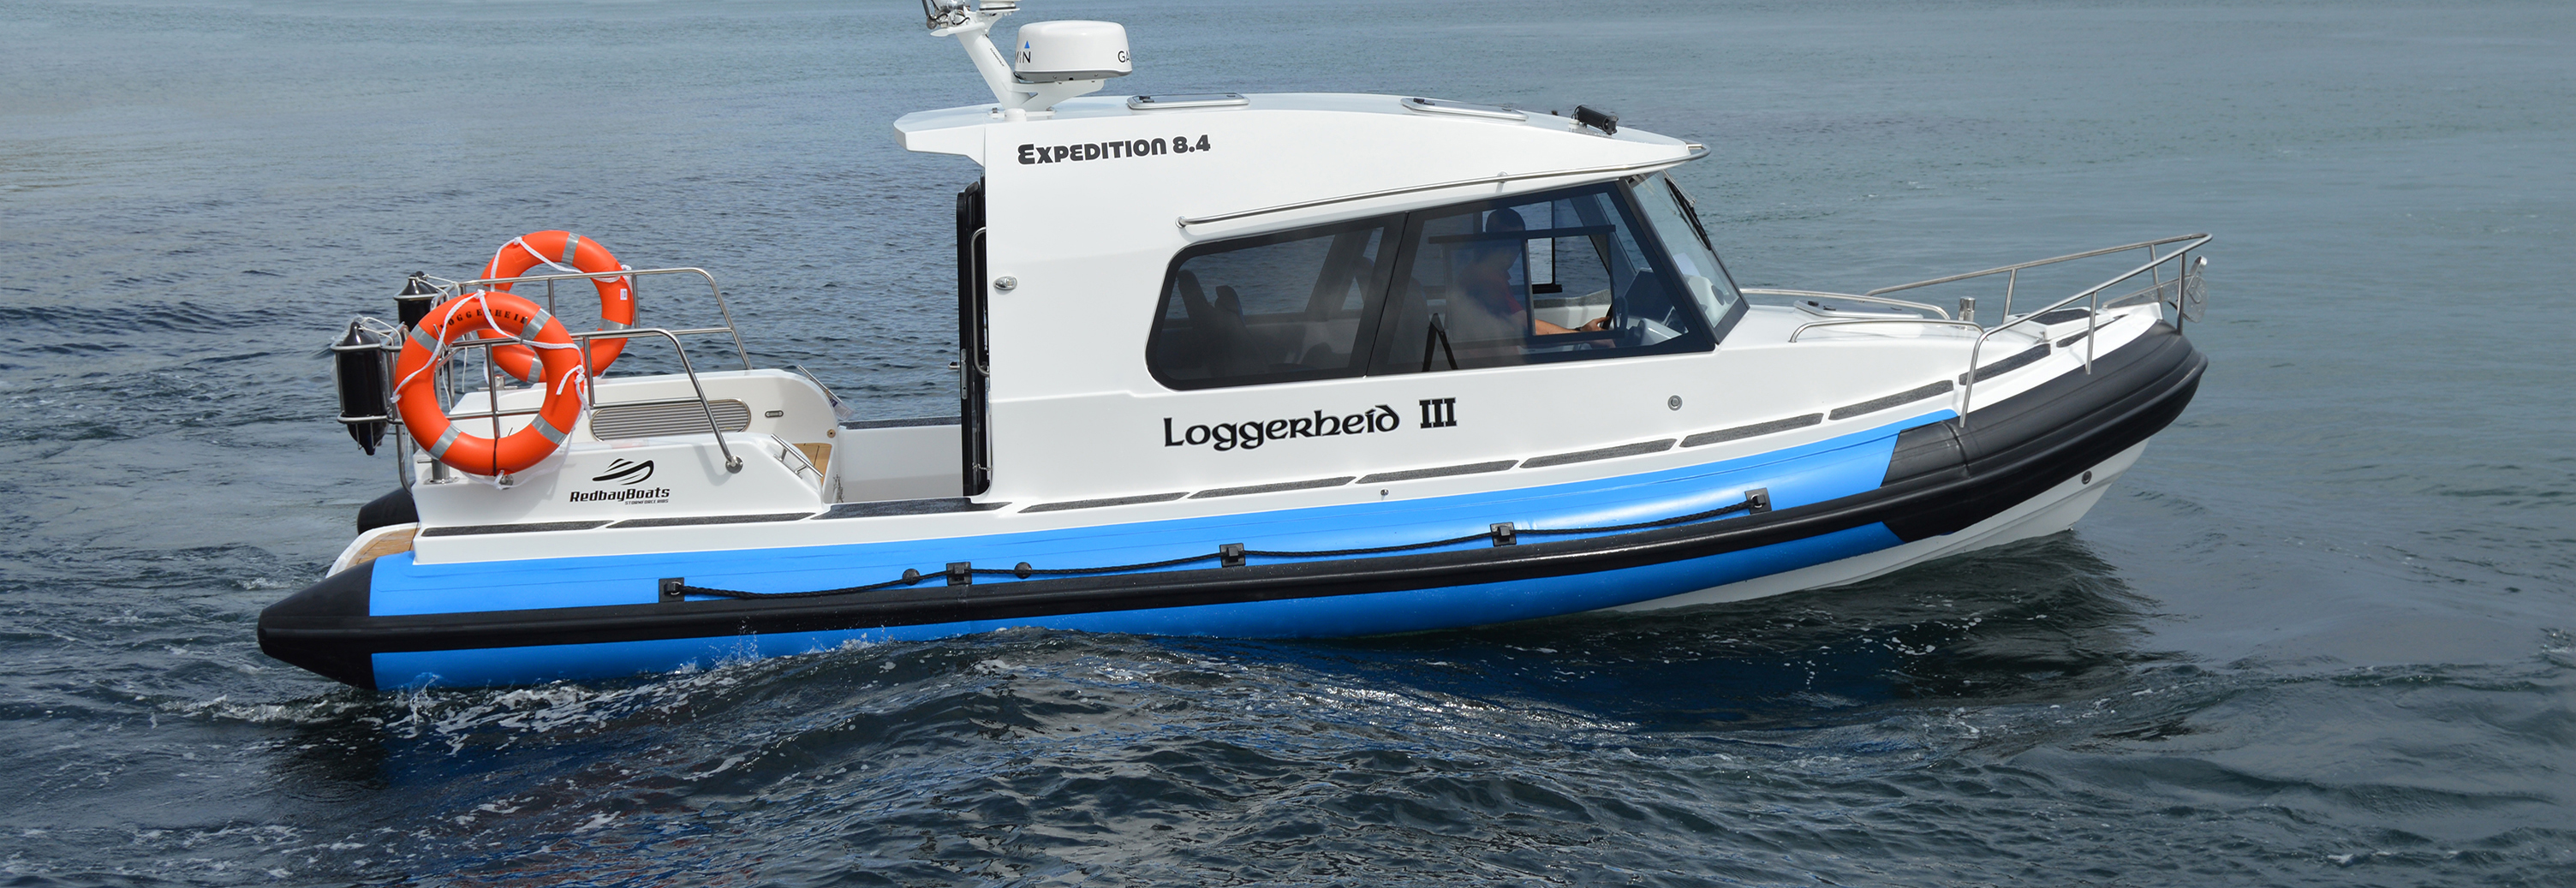 The Stormforce 8.4 Expedition